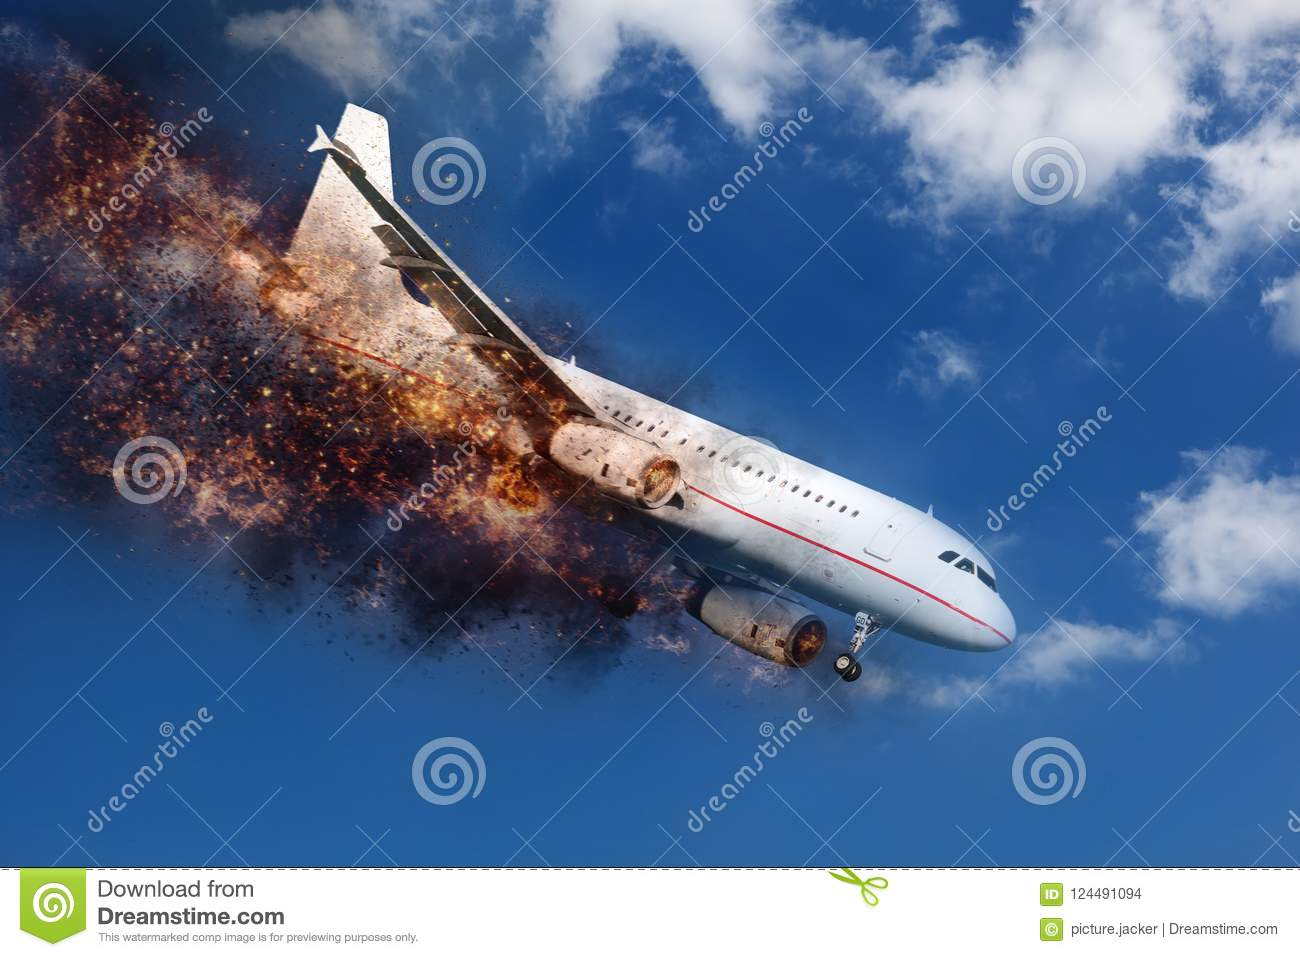 exploding and burning aircraft in the sky before crashing down stock